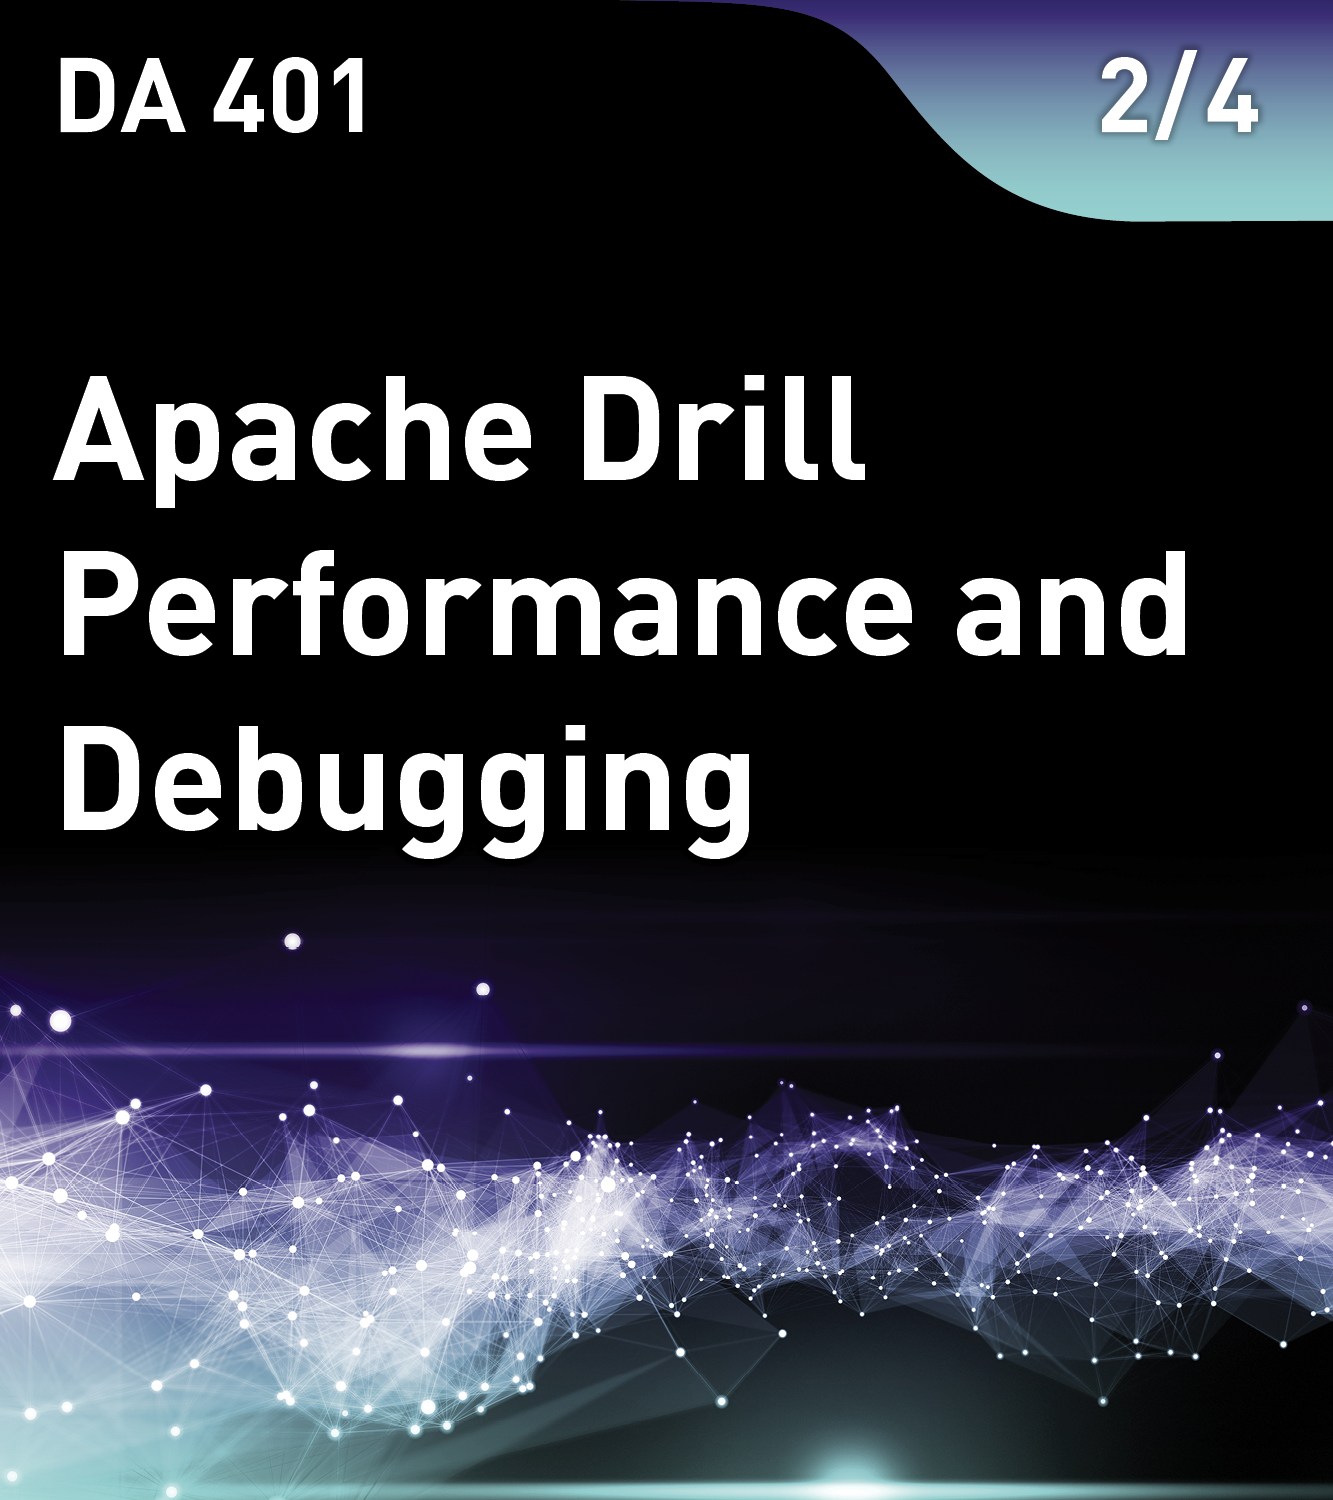 DA 401 – Apache Drill Performance and Debugging